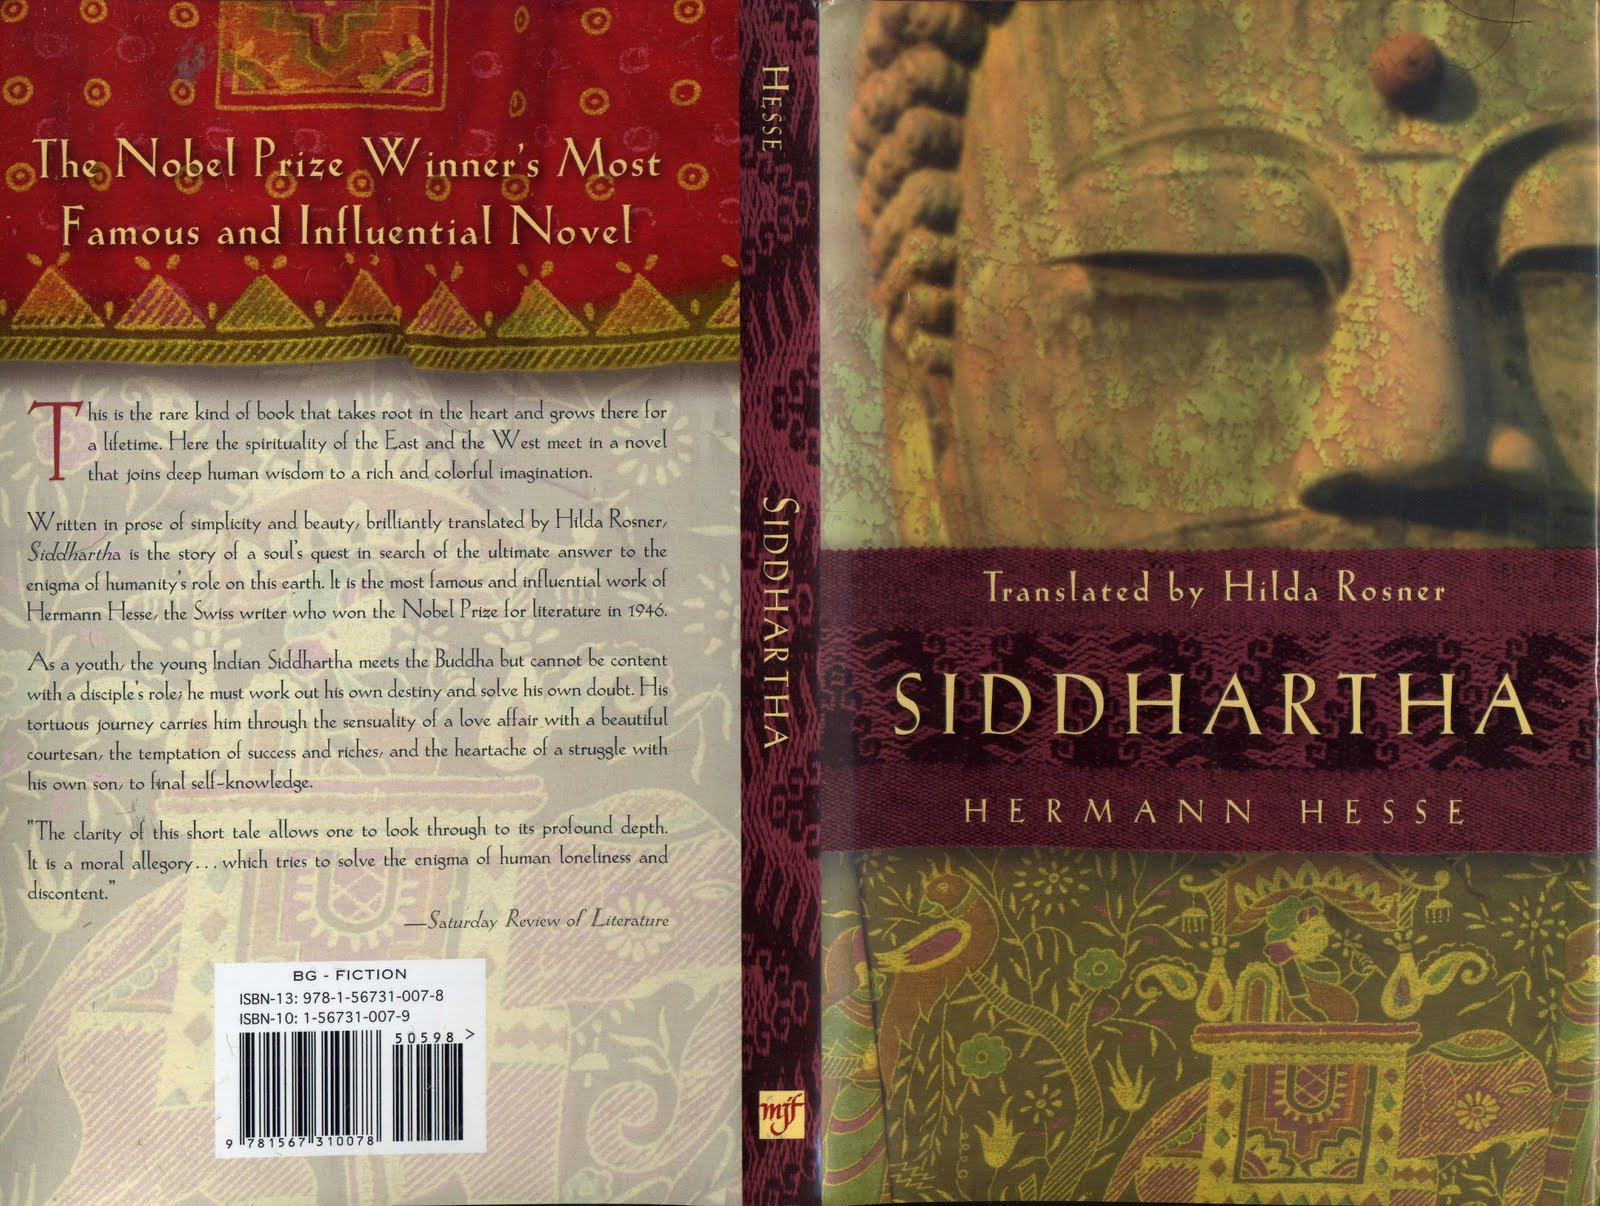 challenges through siddharthas path essay Literary essay (siddhartha) often leads to unexpected challenges in herman hesse's novel along the path of self-denial through pain.